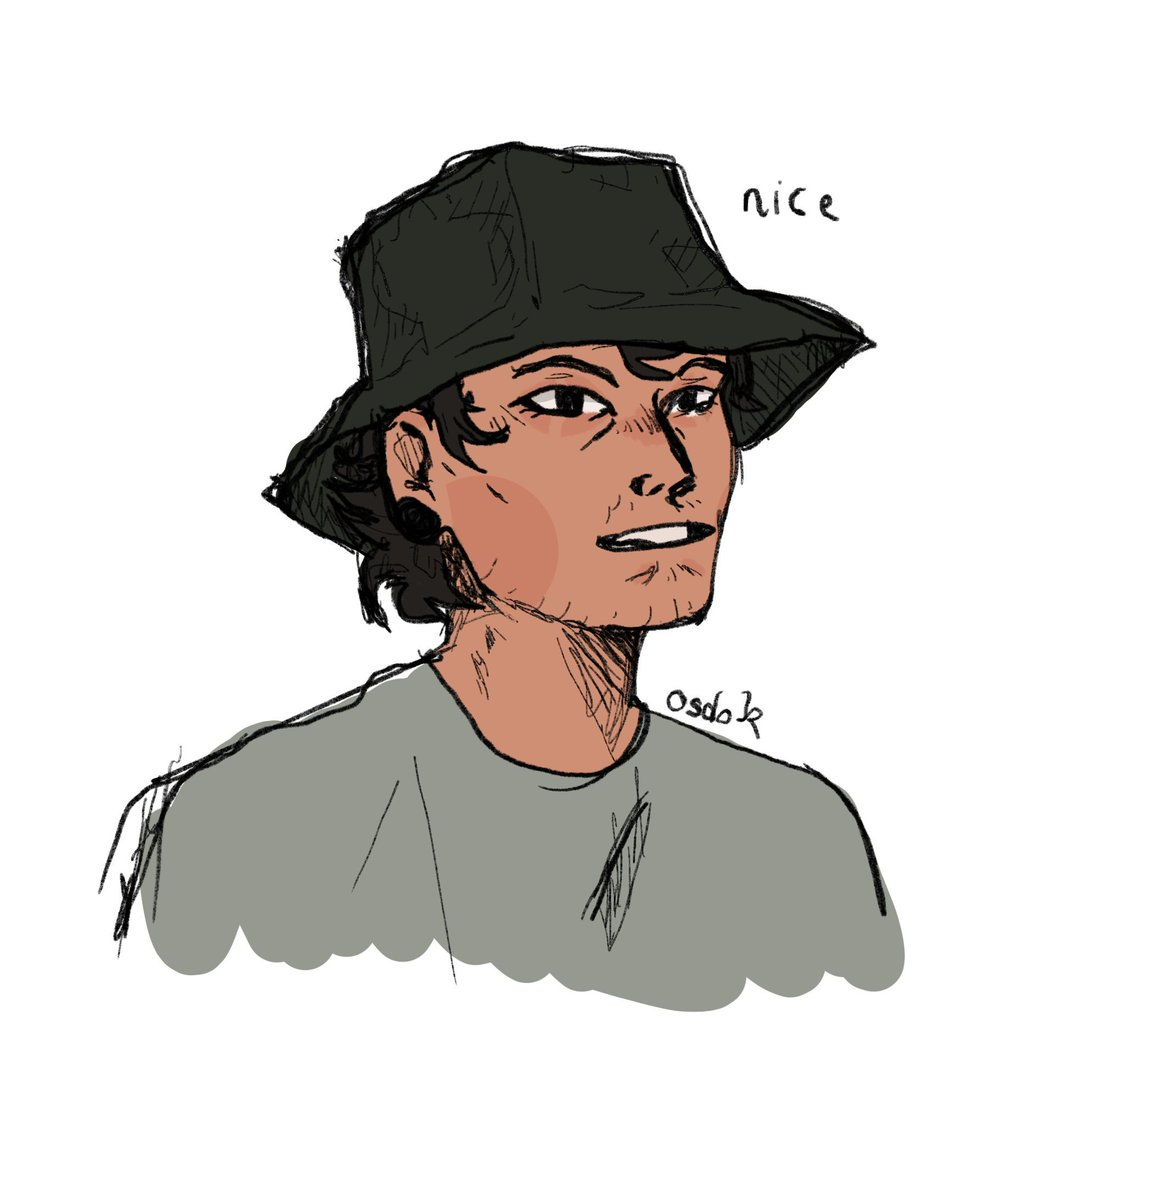 Os On Twitter I Tried To Draw Bucket Hat Josh With My Left Hand Key Word Is I Tried